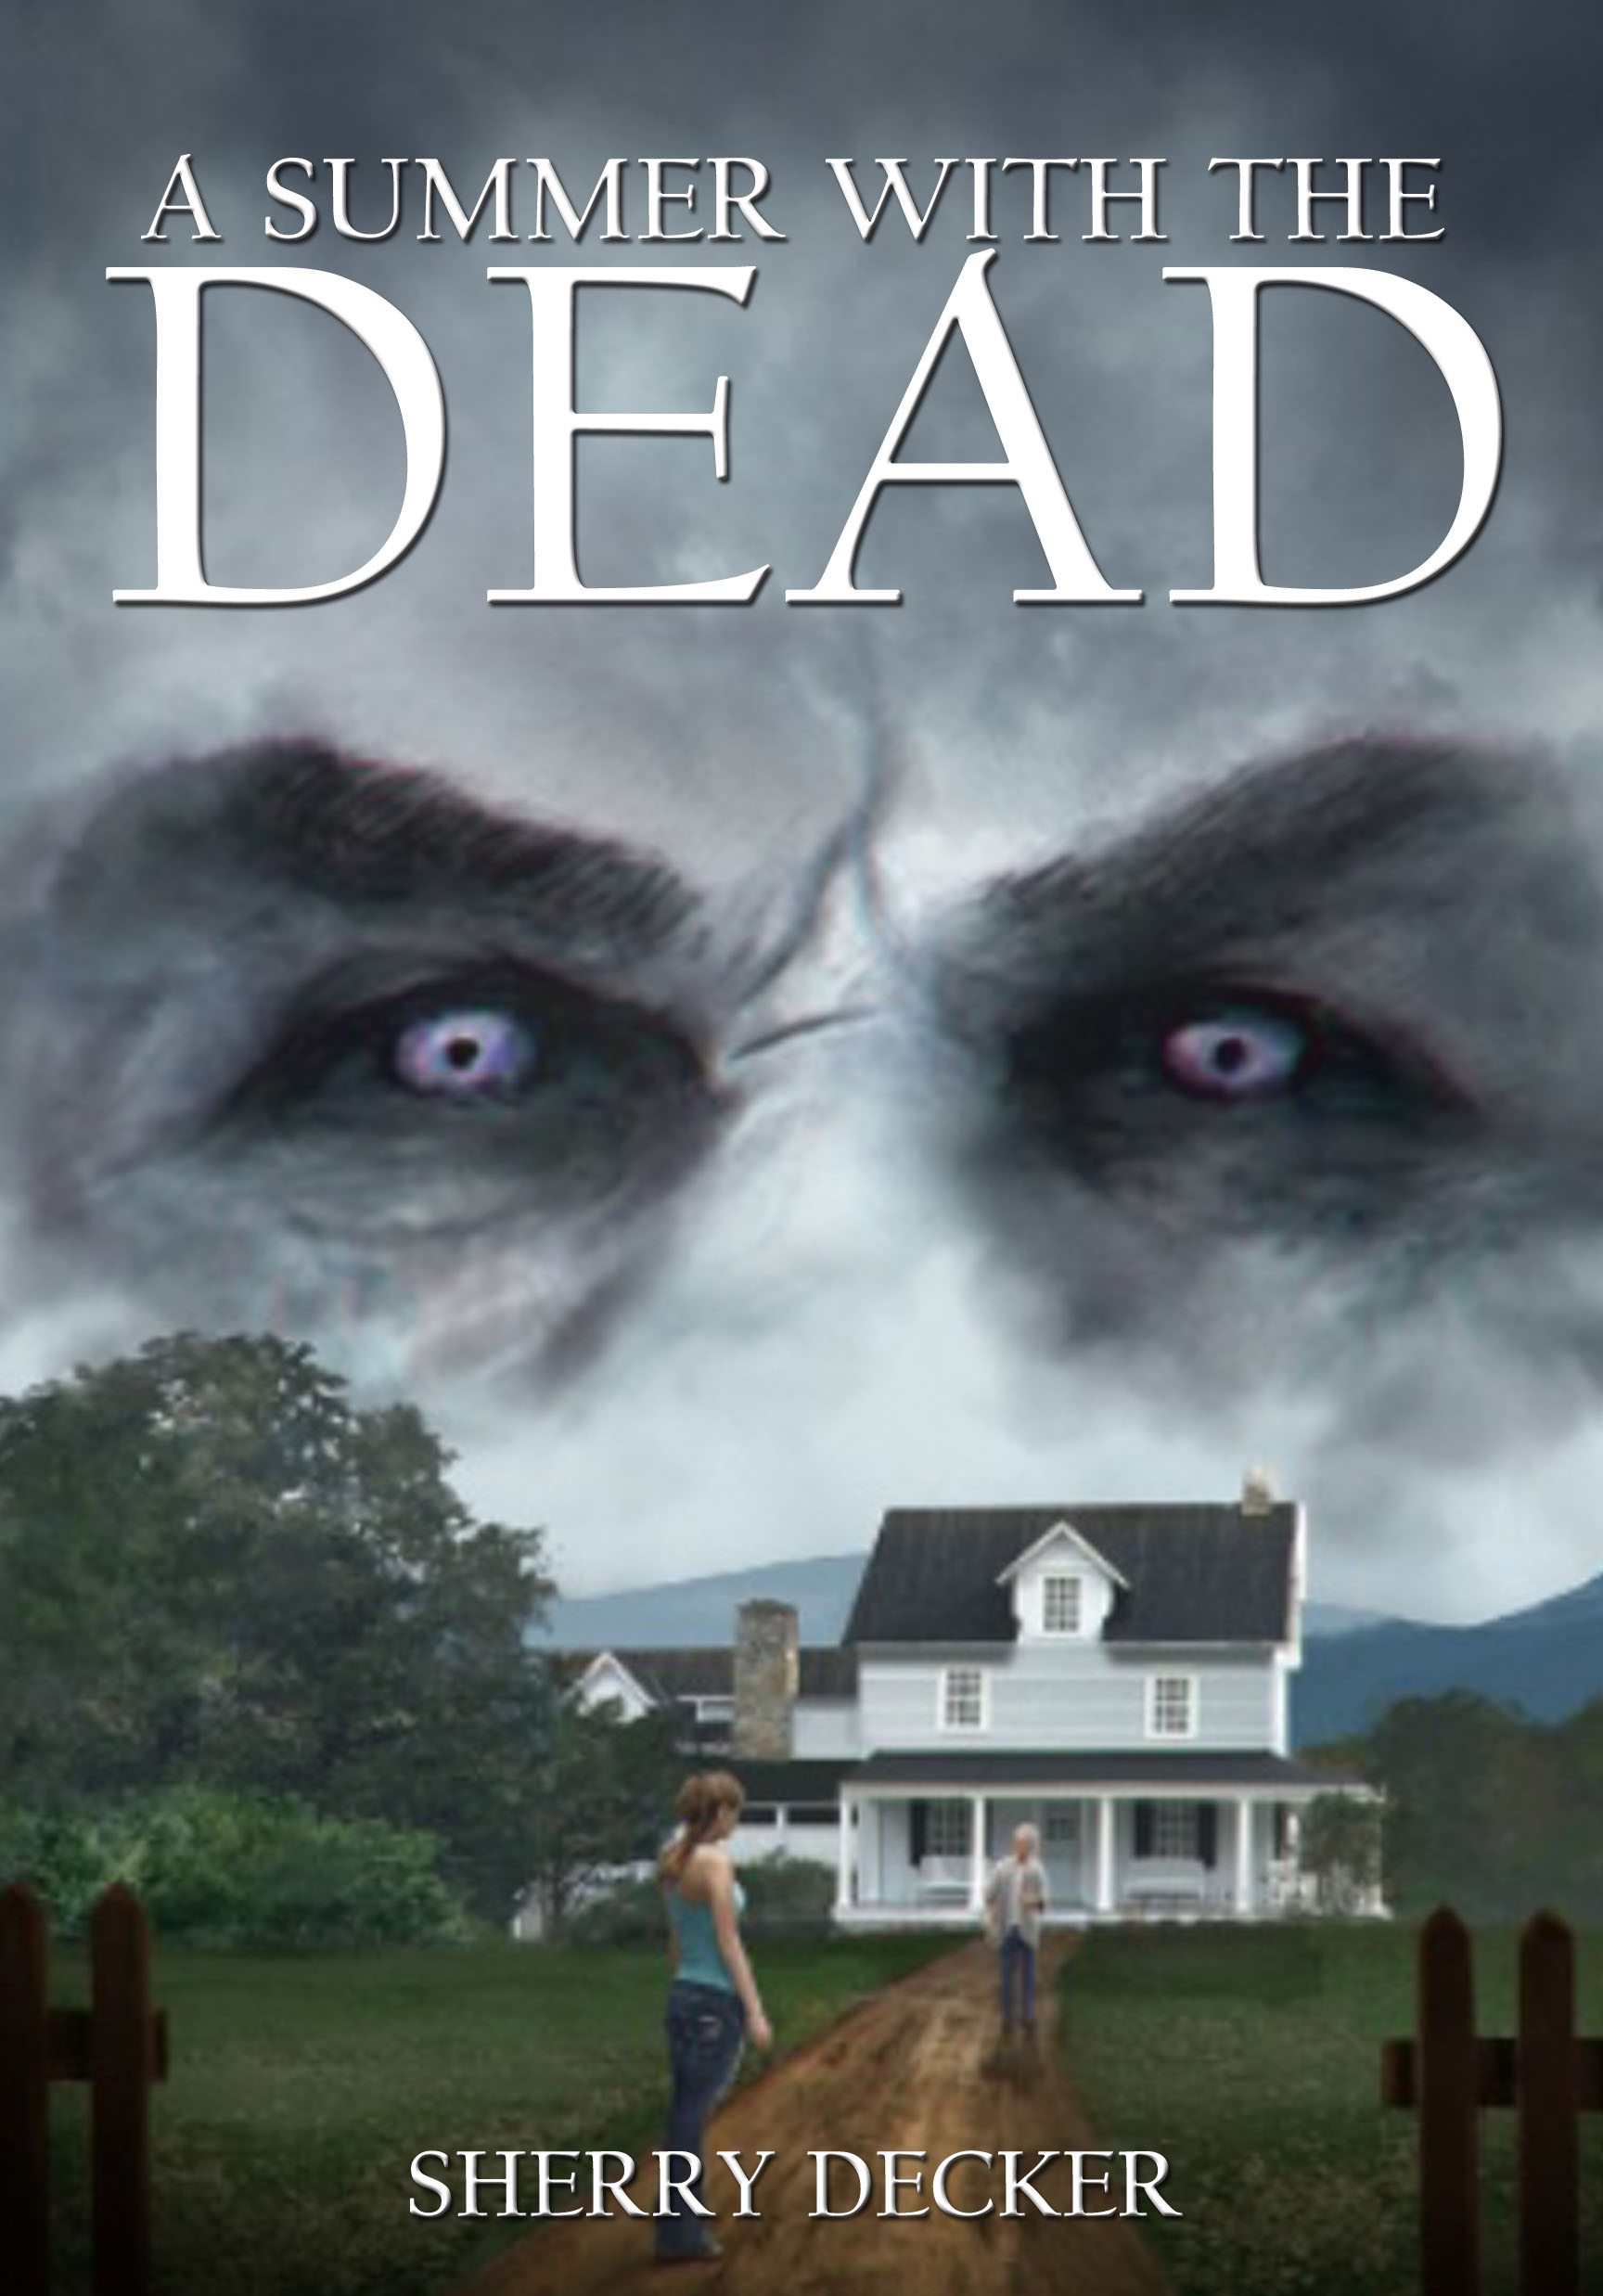 A Summer with the Dead